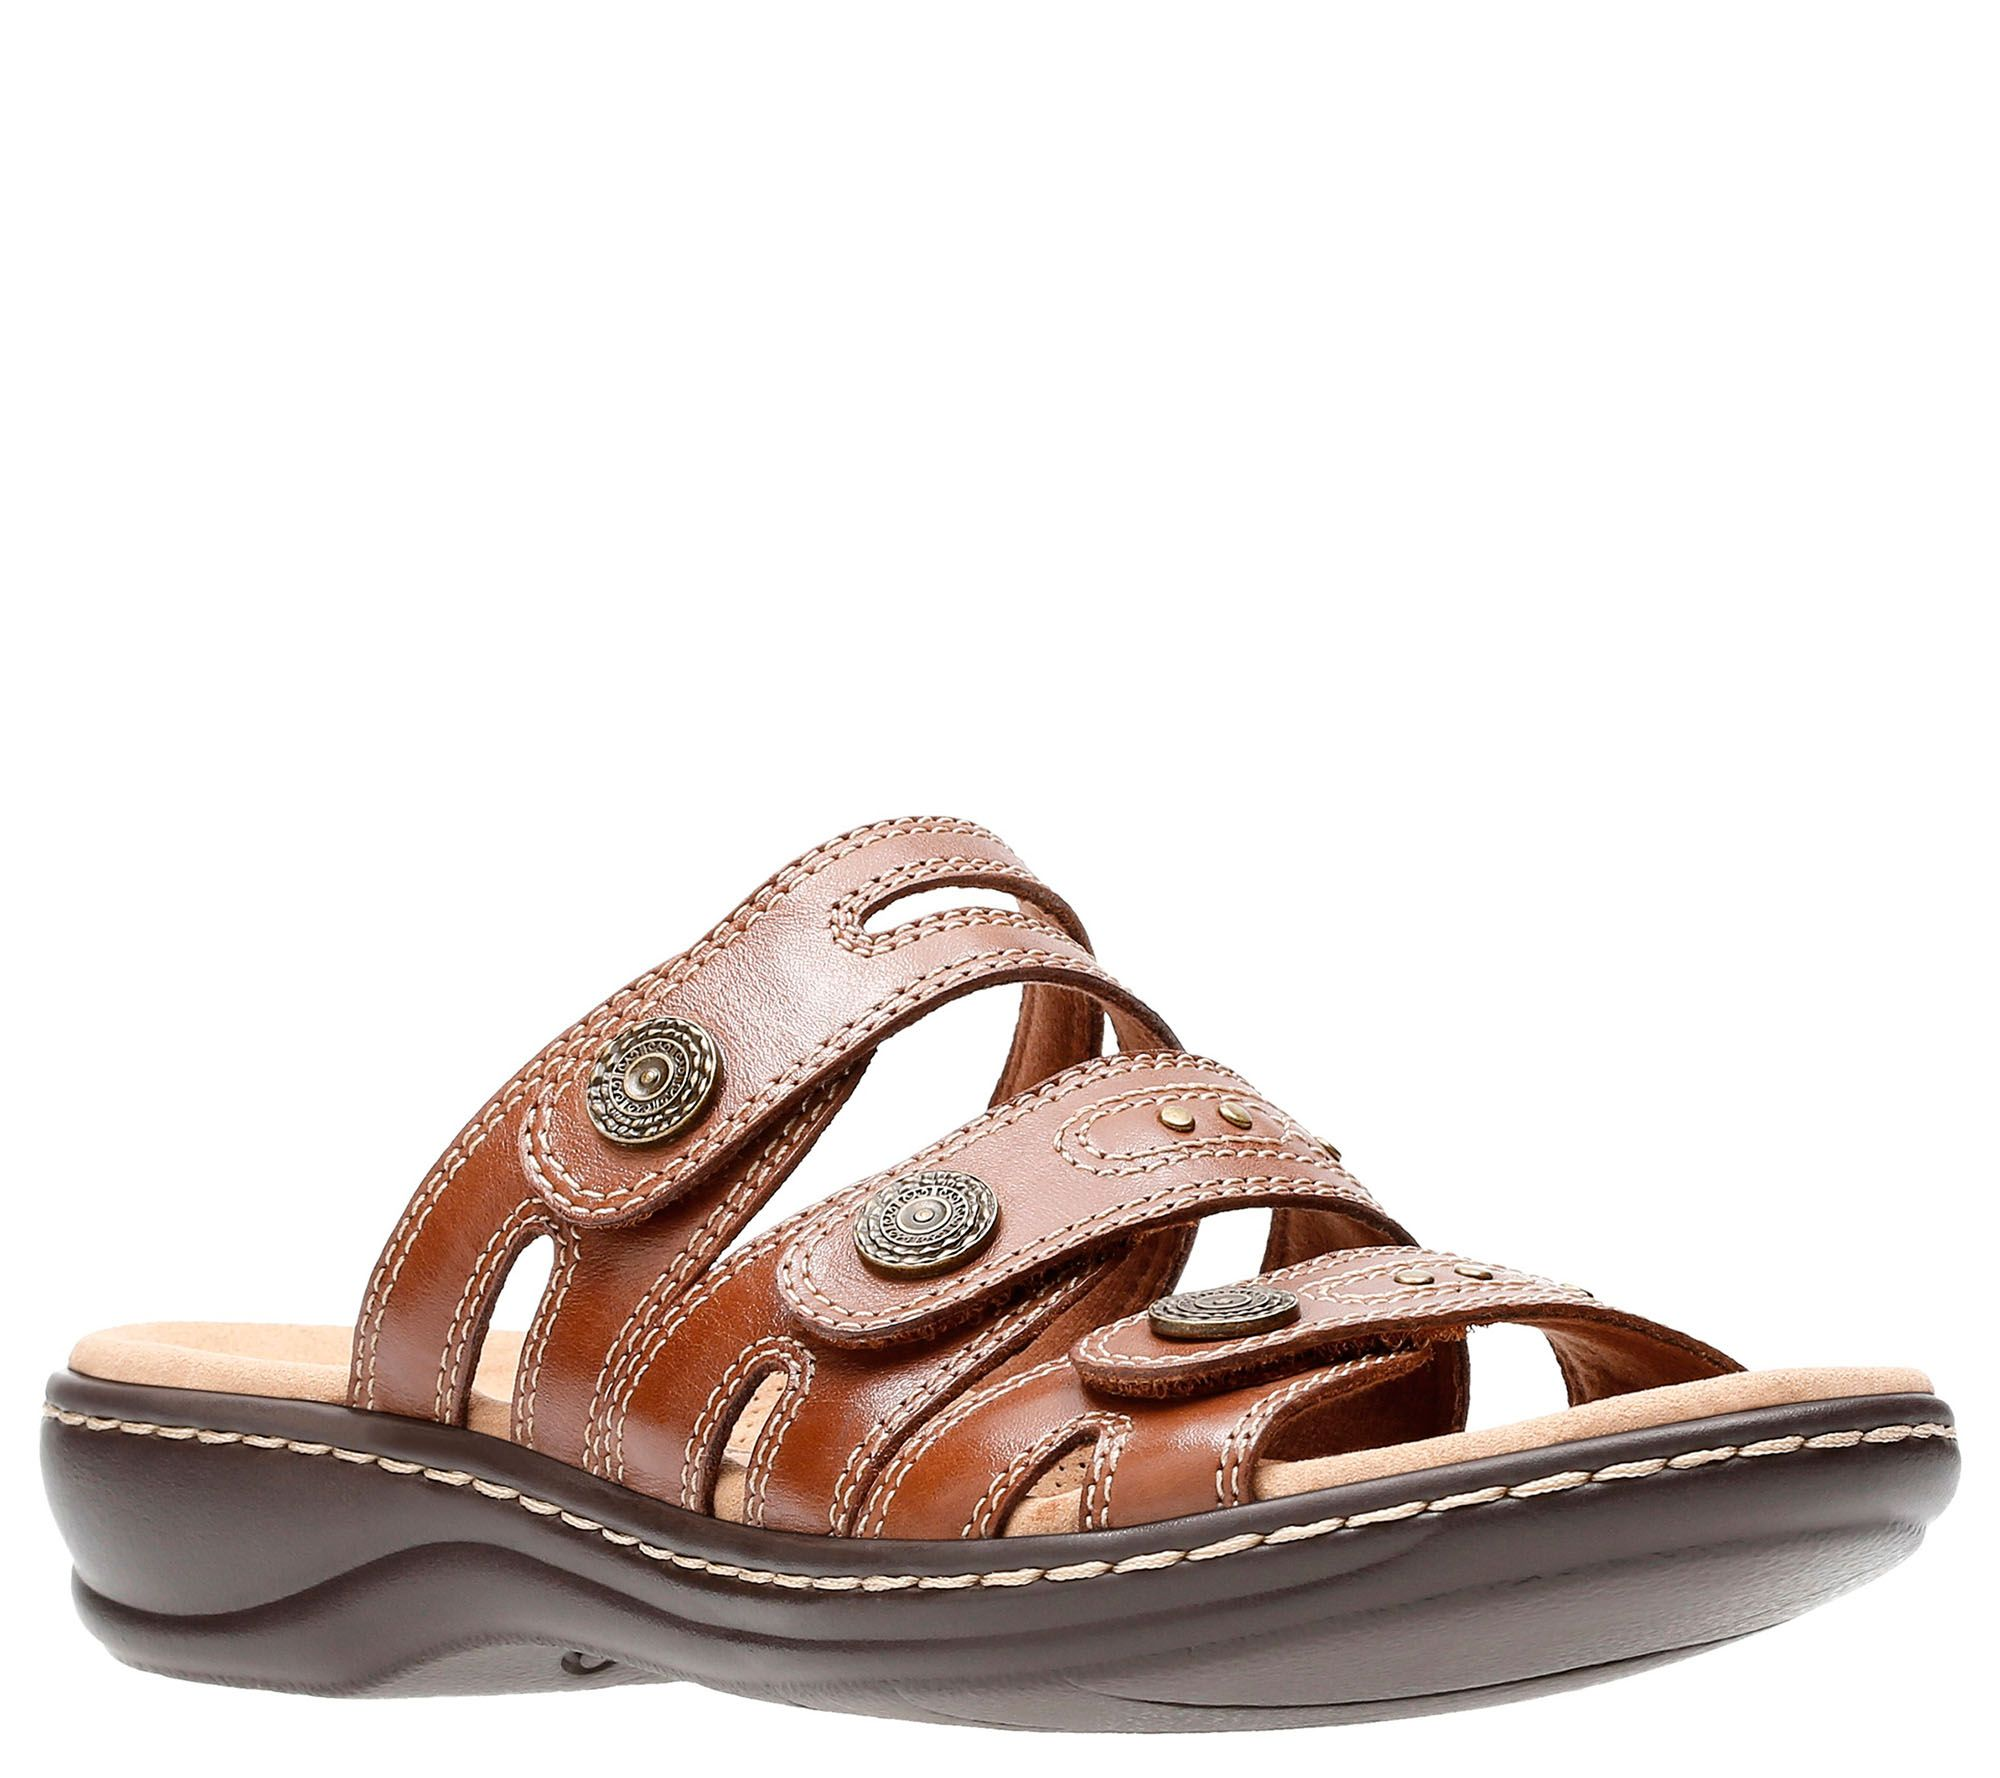 ecf4844e8eb Clarks Leather Lightweight Triple Strap Slides- Leisa Lakia - Page 1 —  QVC.com